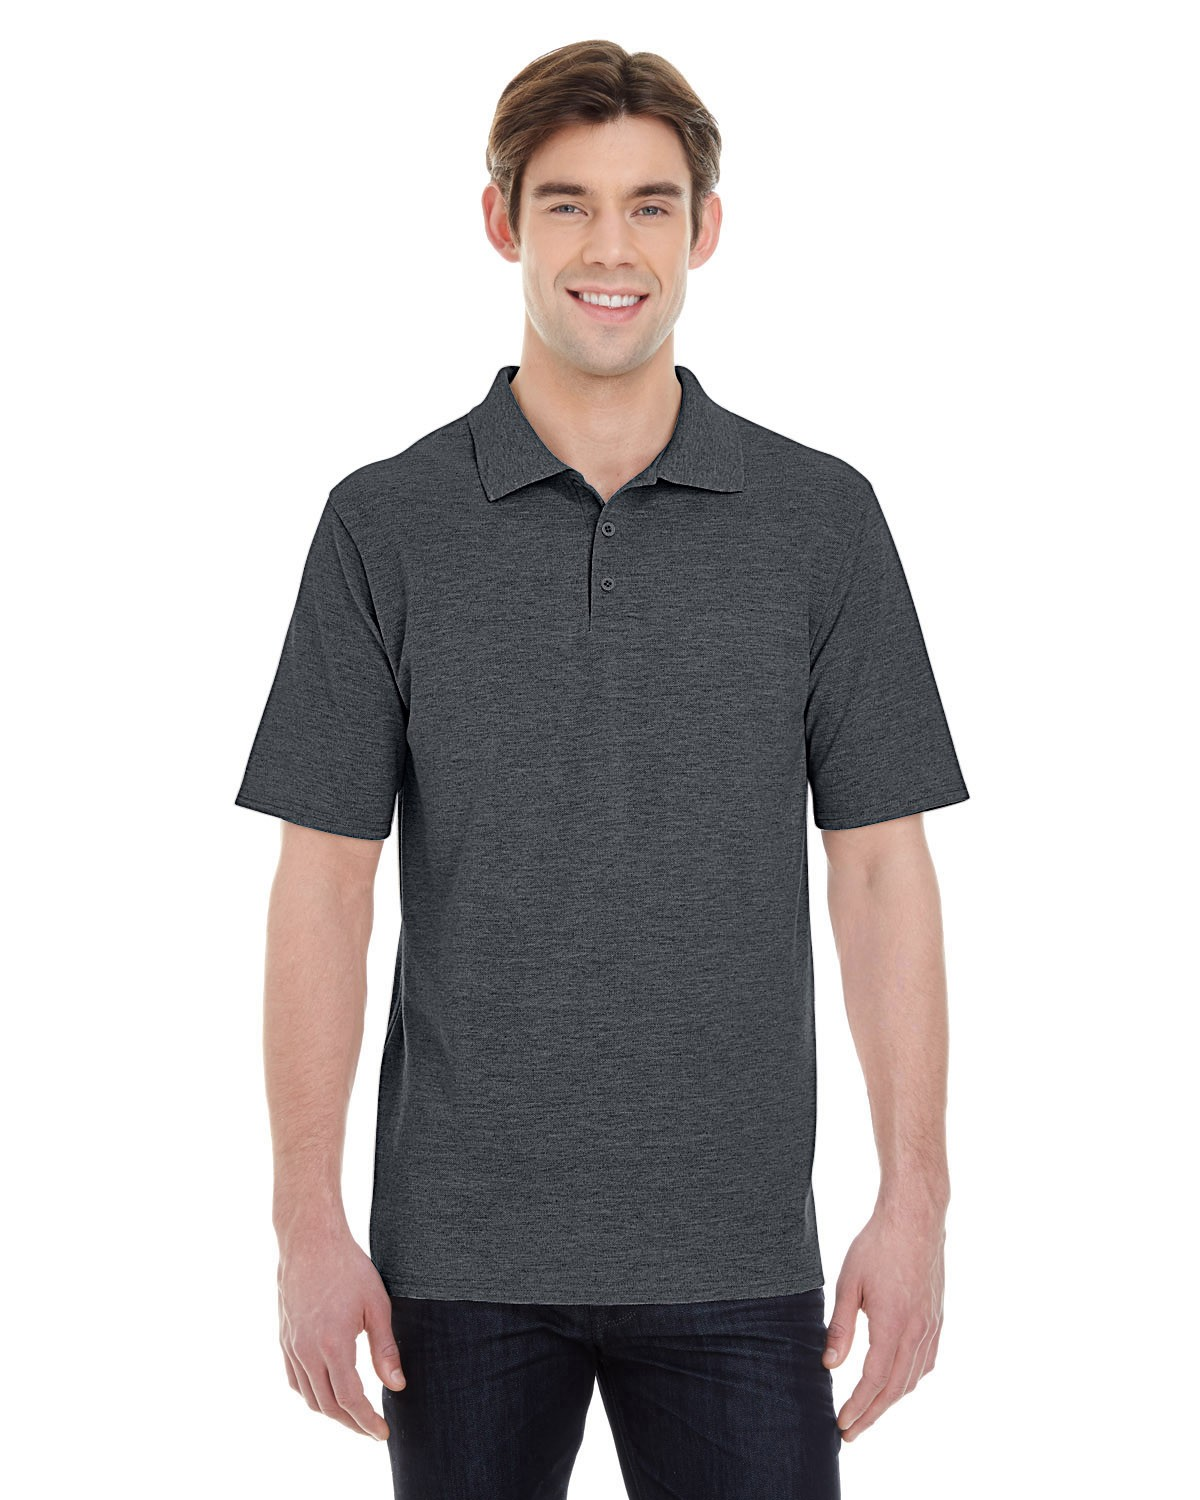 055P Hanes CHARCOAL HEATHER